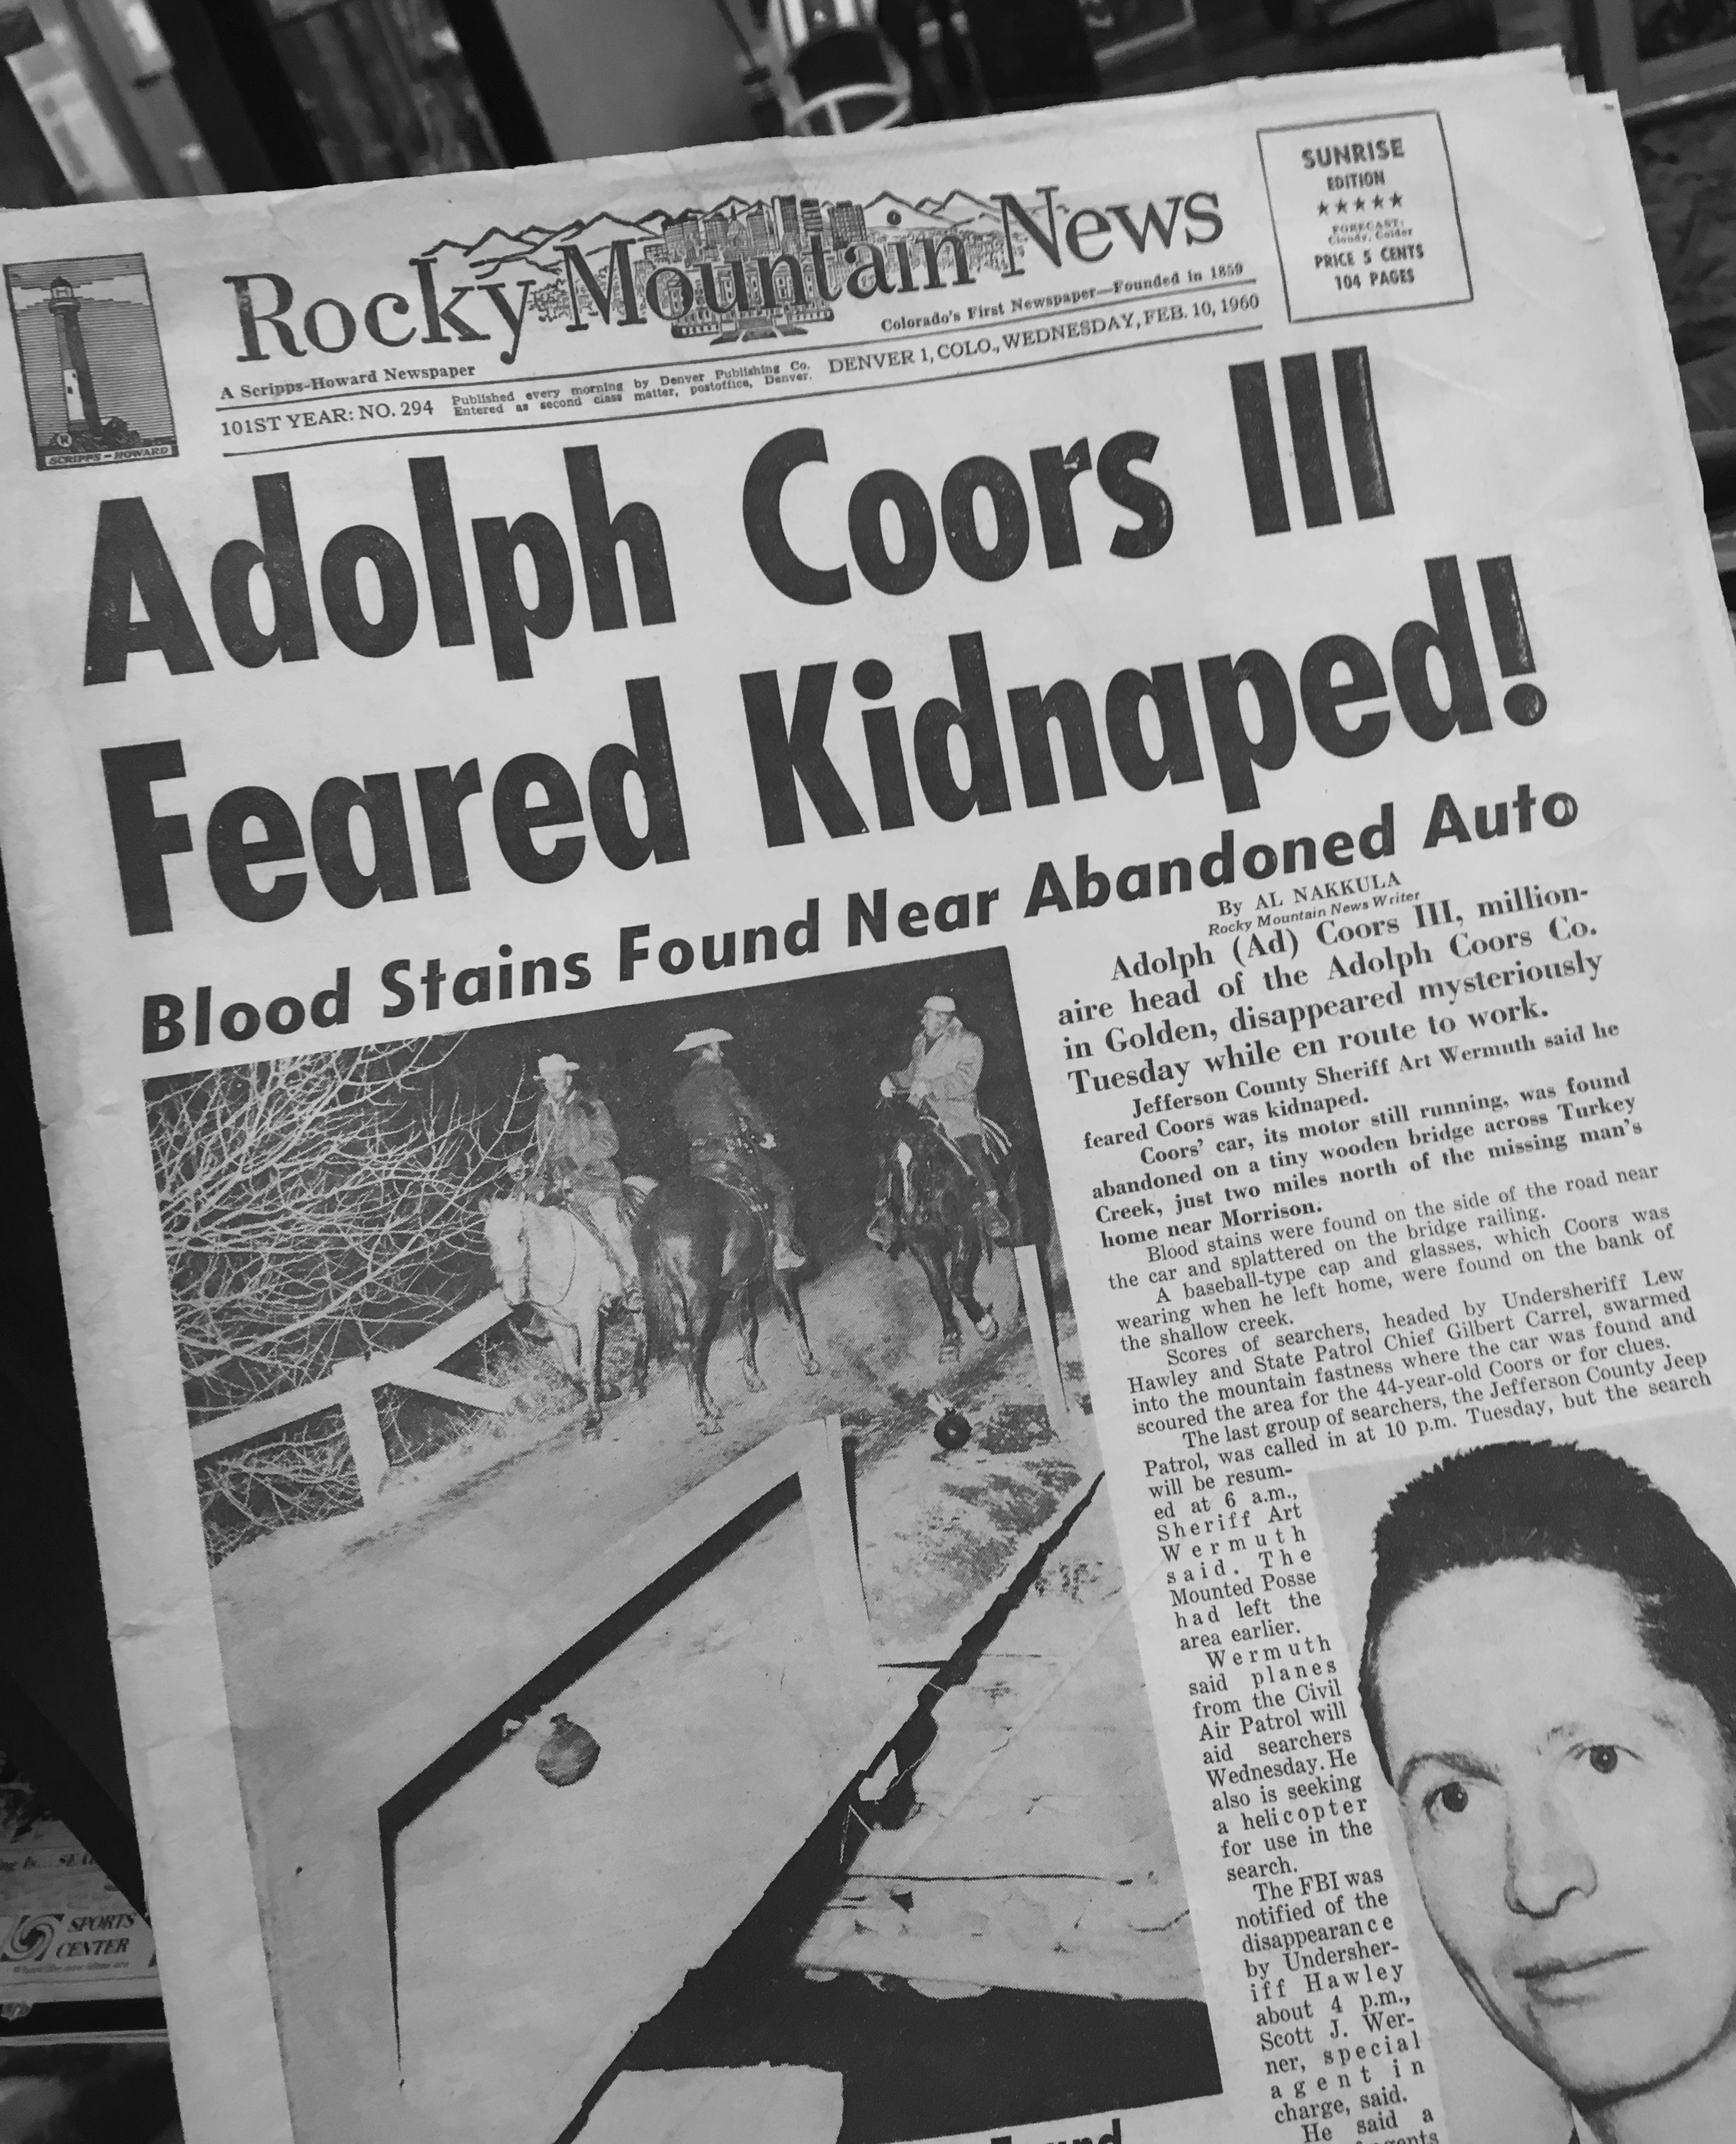 Adolph Coors Iii Stock Photos And Pictures: File:February 10, 1960 Cover Of The Rocky Mountain News